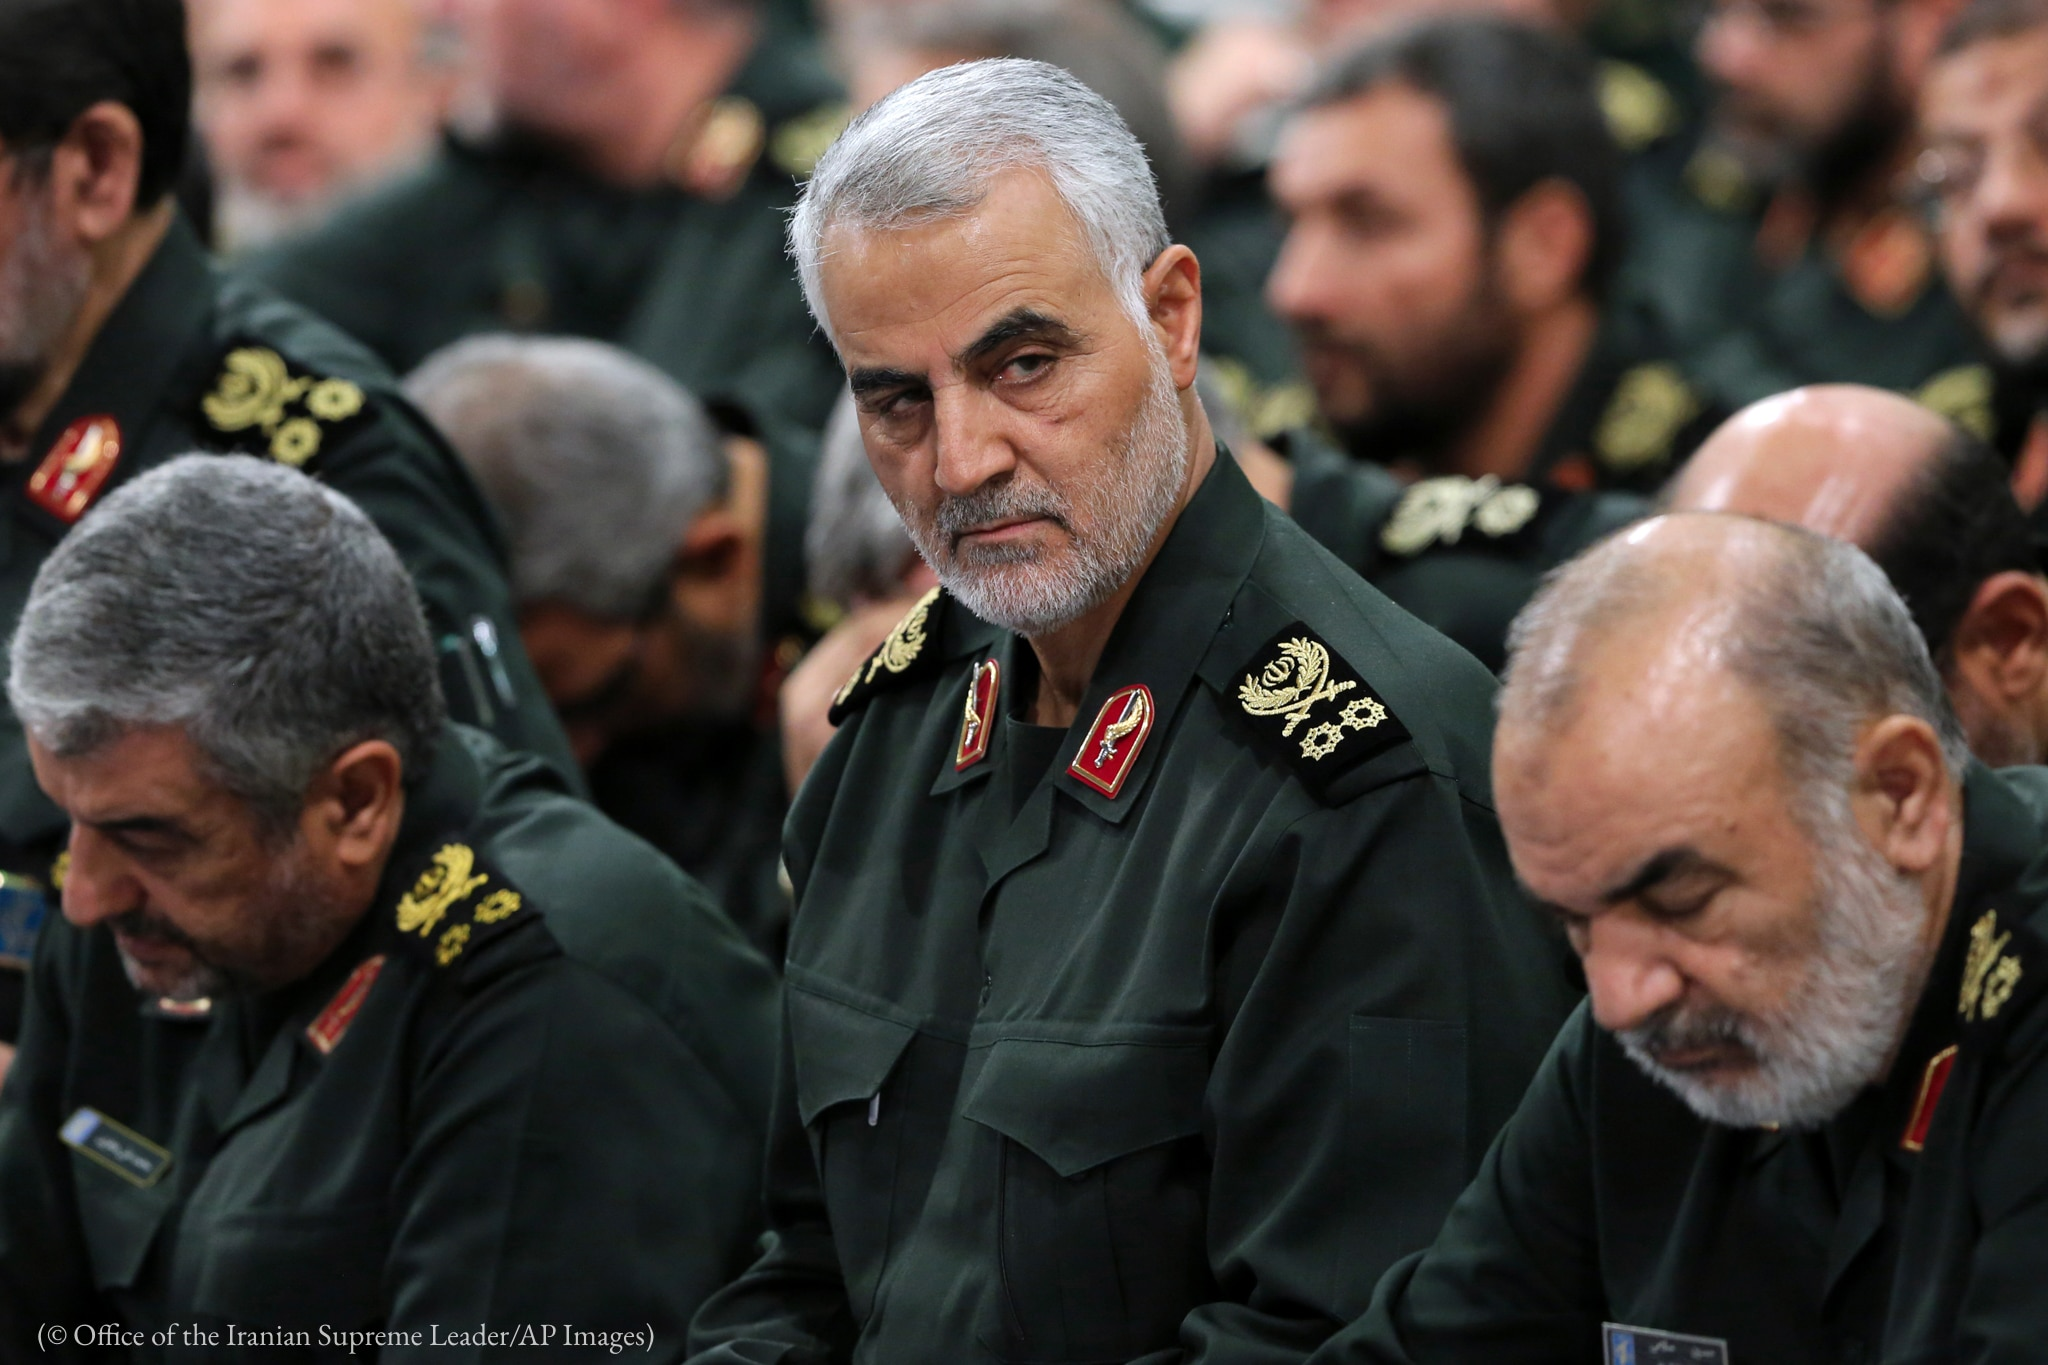 Qassem Soleimani surrounded by people in uniform (© Office of the Iranian Supreme Leader/AP Images)